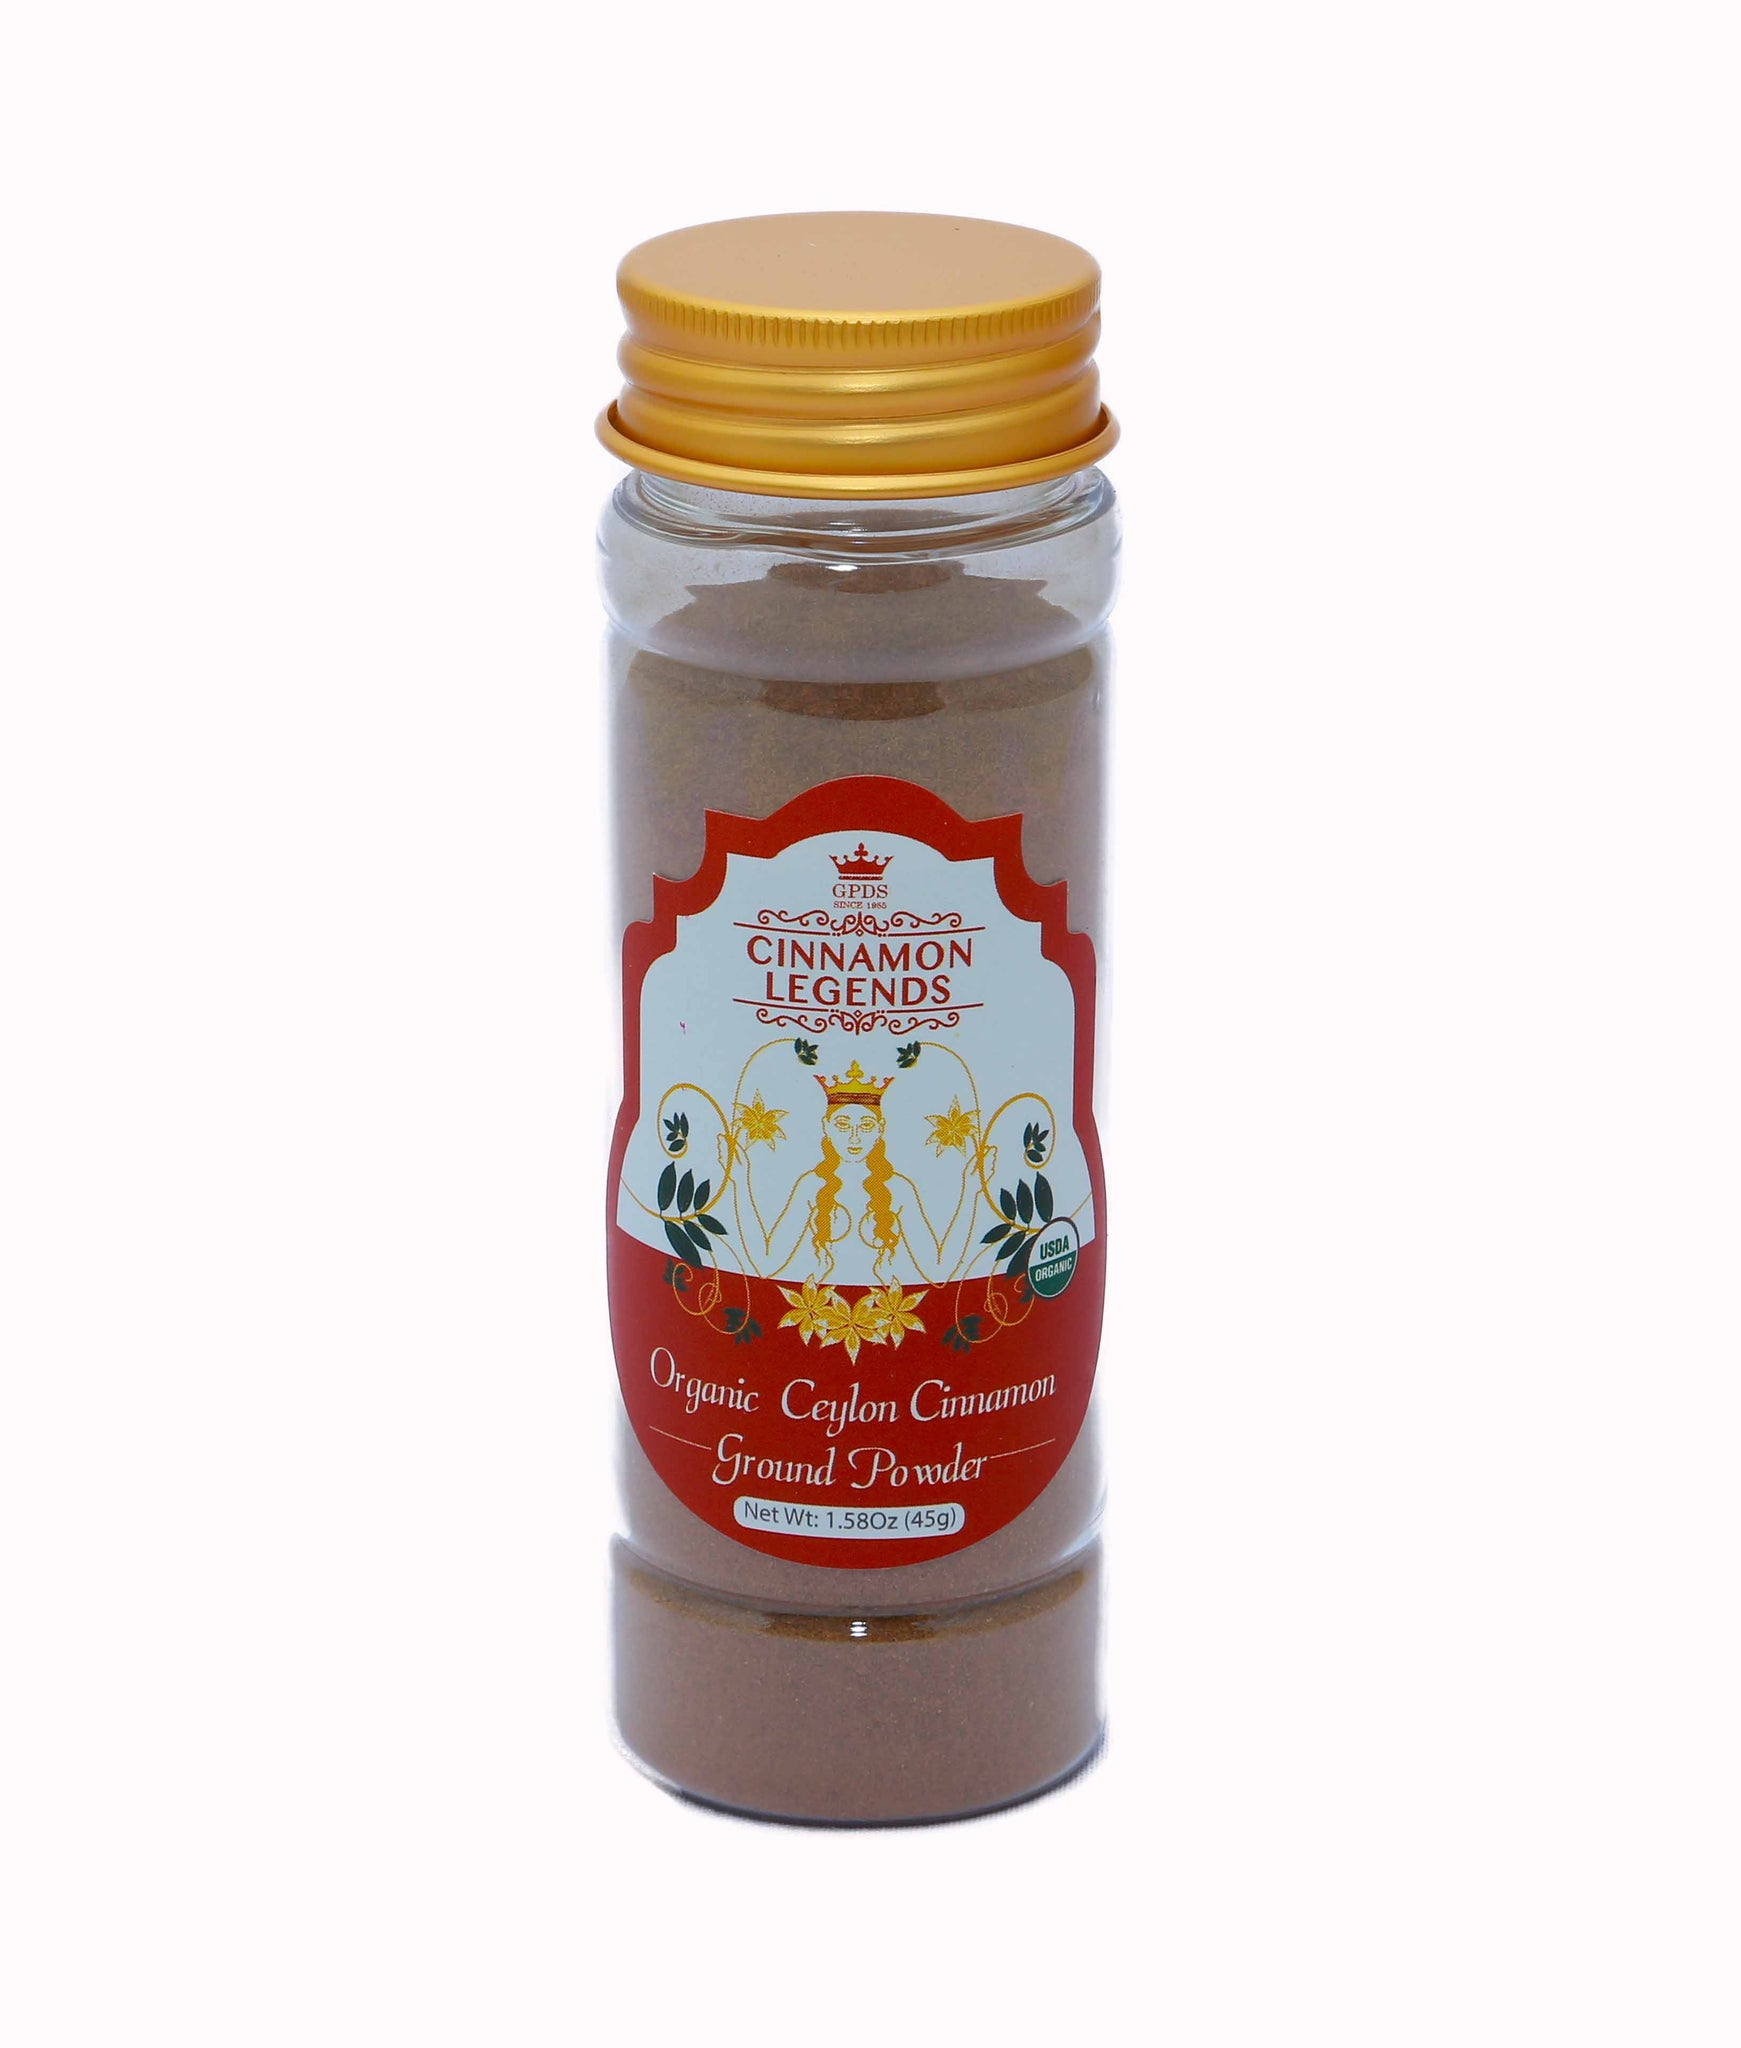 Bio Ceylon Cinnamon Ground Powder - 60g